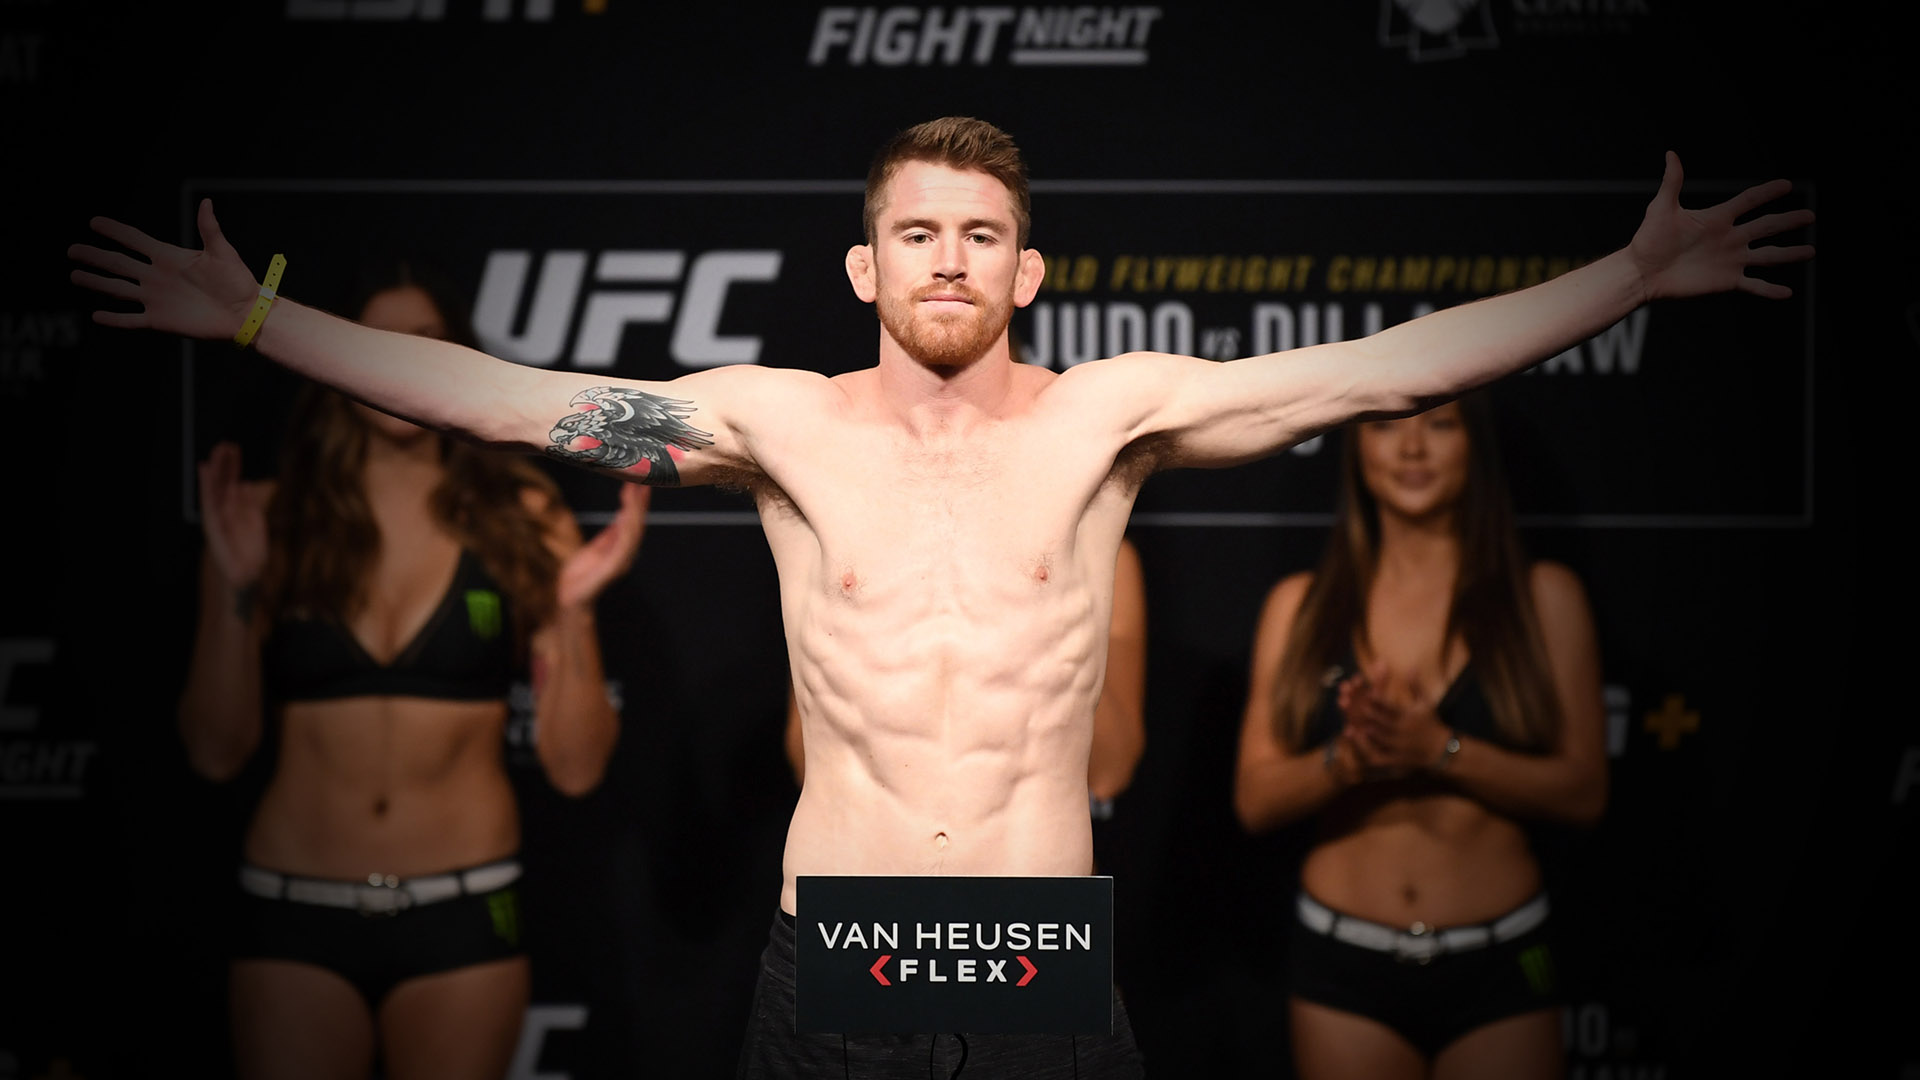 Cory Sandhagen poses on the scale during the UFC Fight Night weigh-in at Barclays Center on January 18, 2019 in the Brooklyn borough of New York City. (Photo by Josh Hedges/Zuffa LLC)